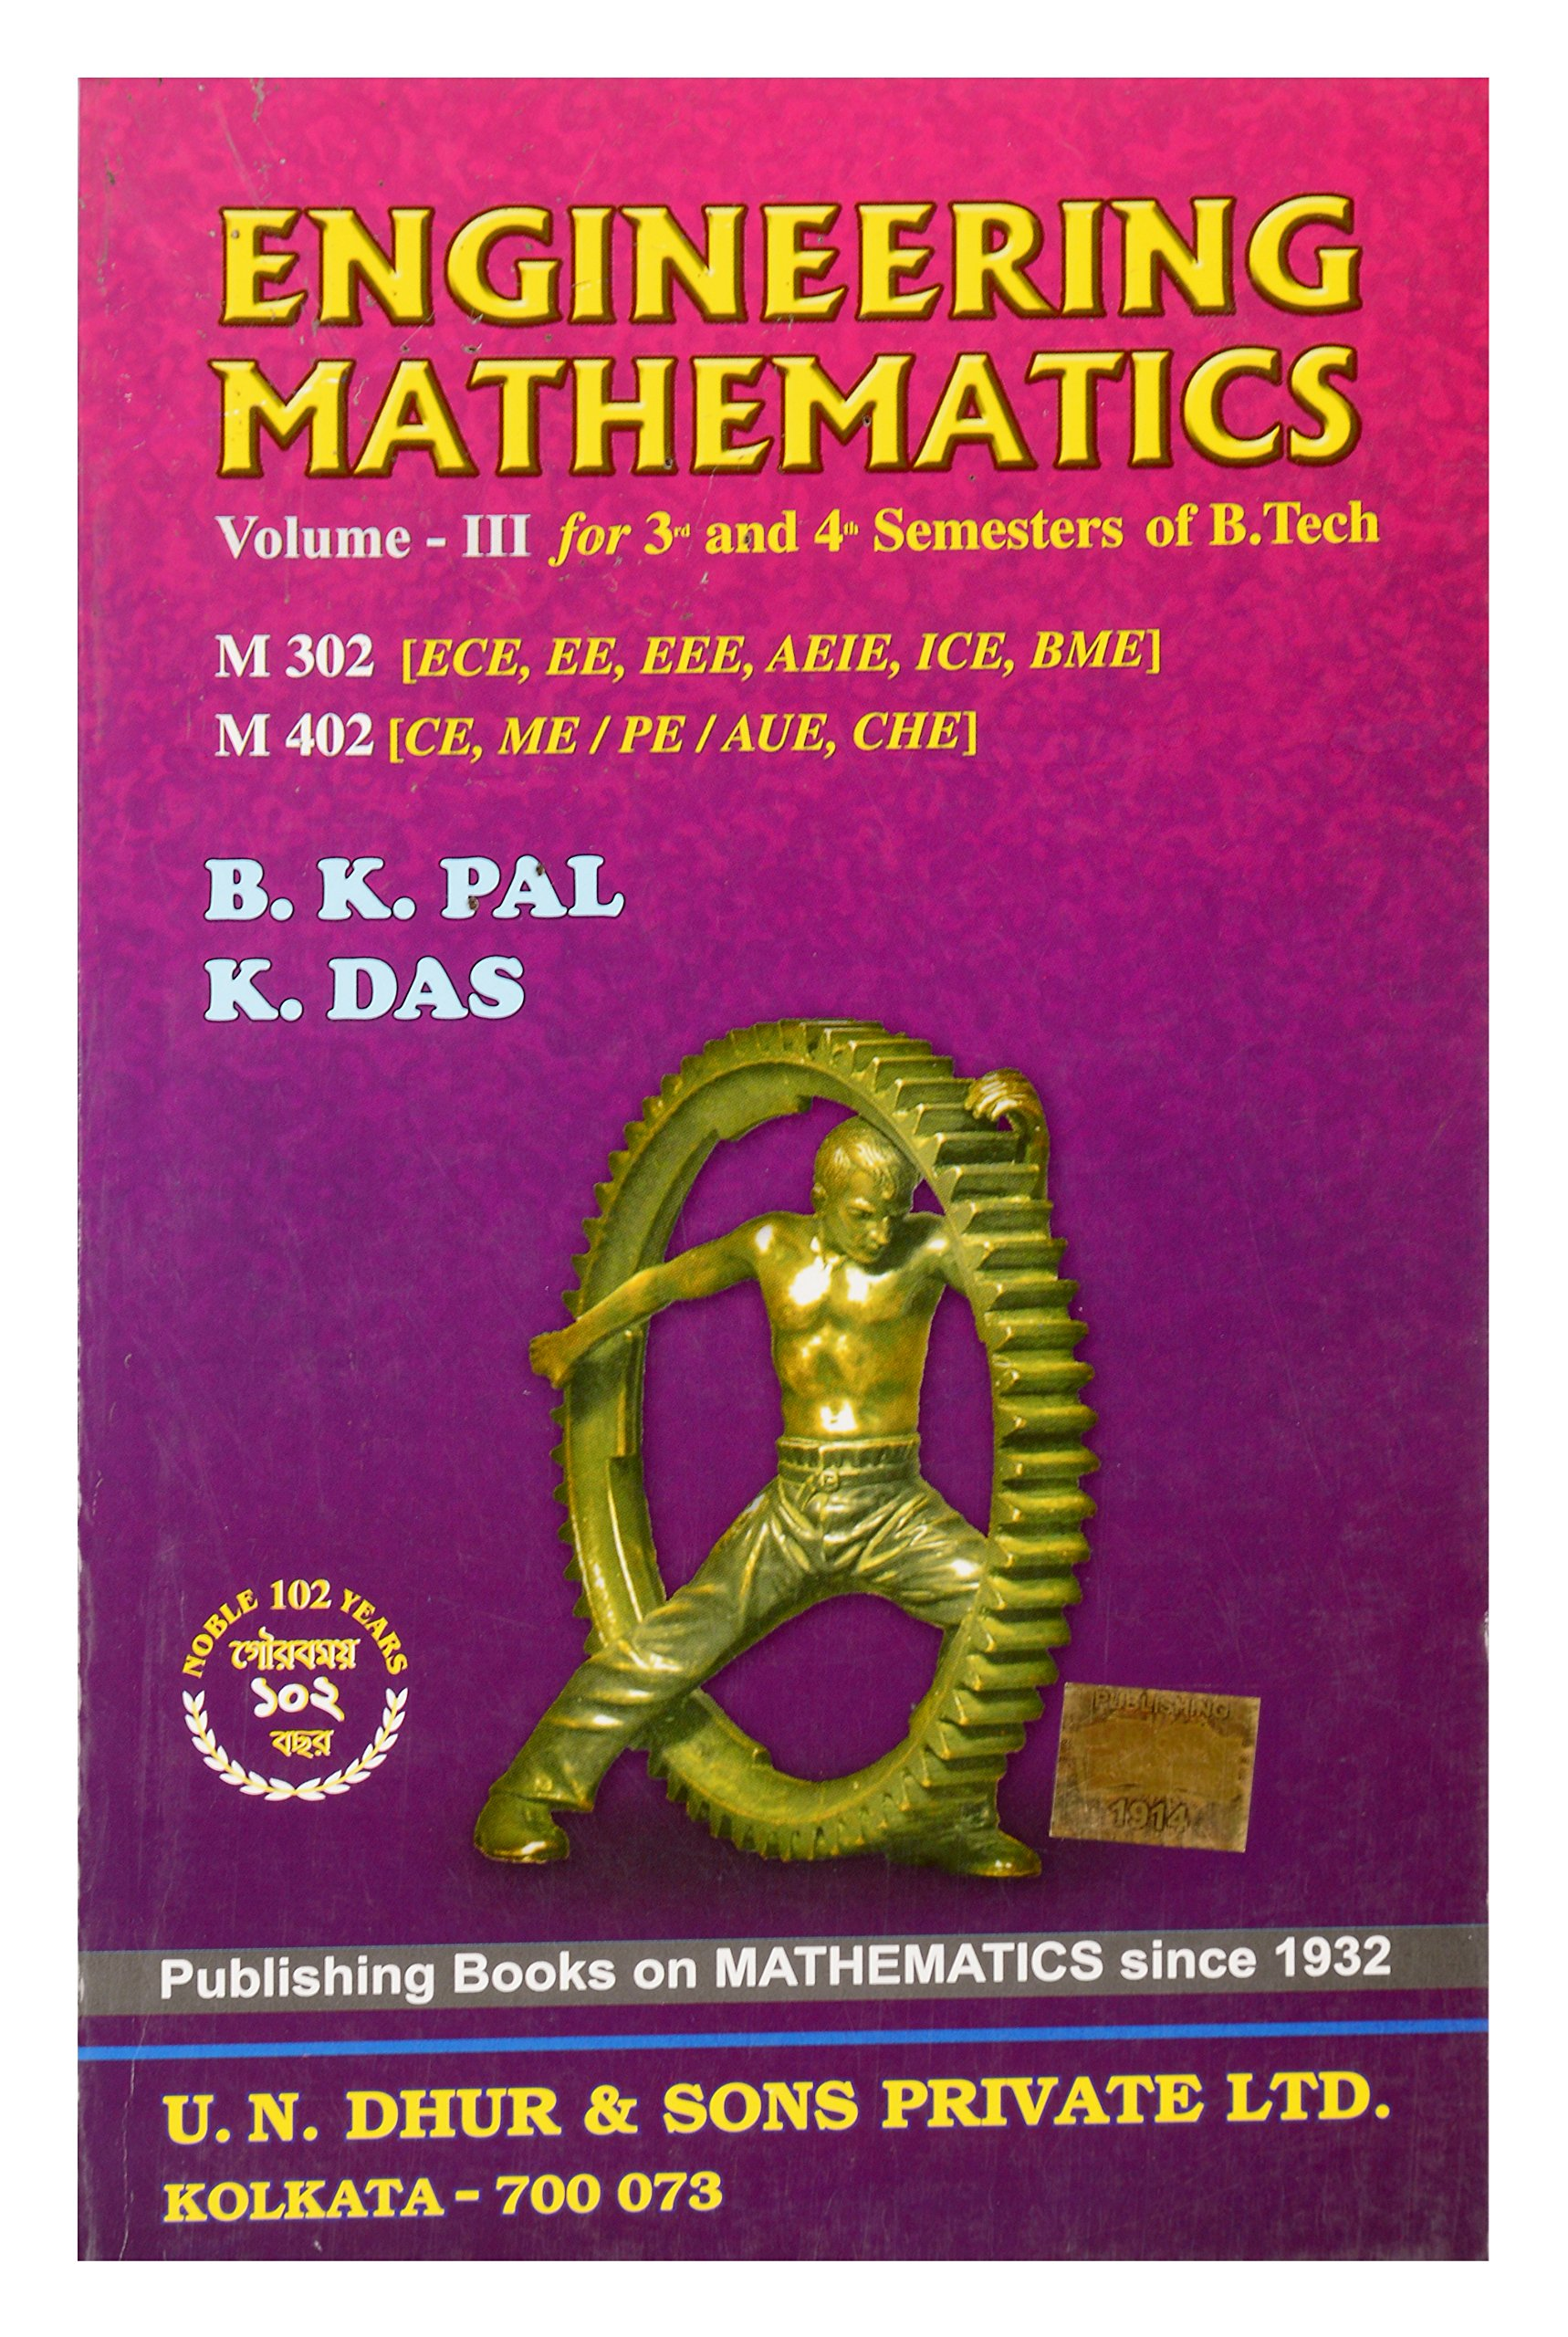 engineering mathativs by das and pal 3 downlad